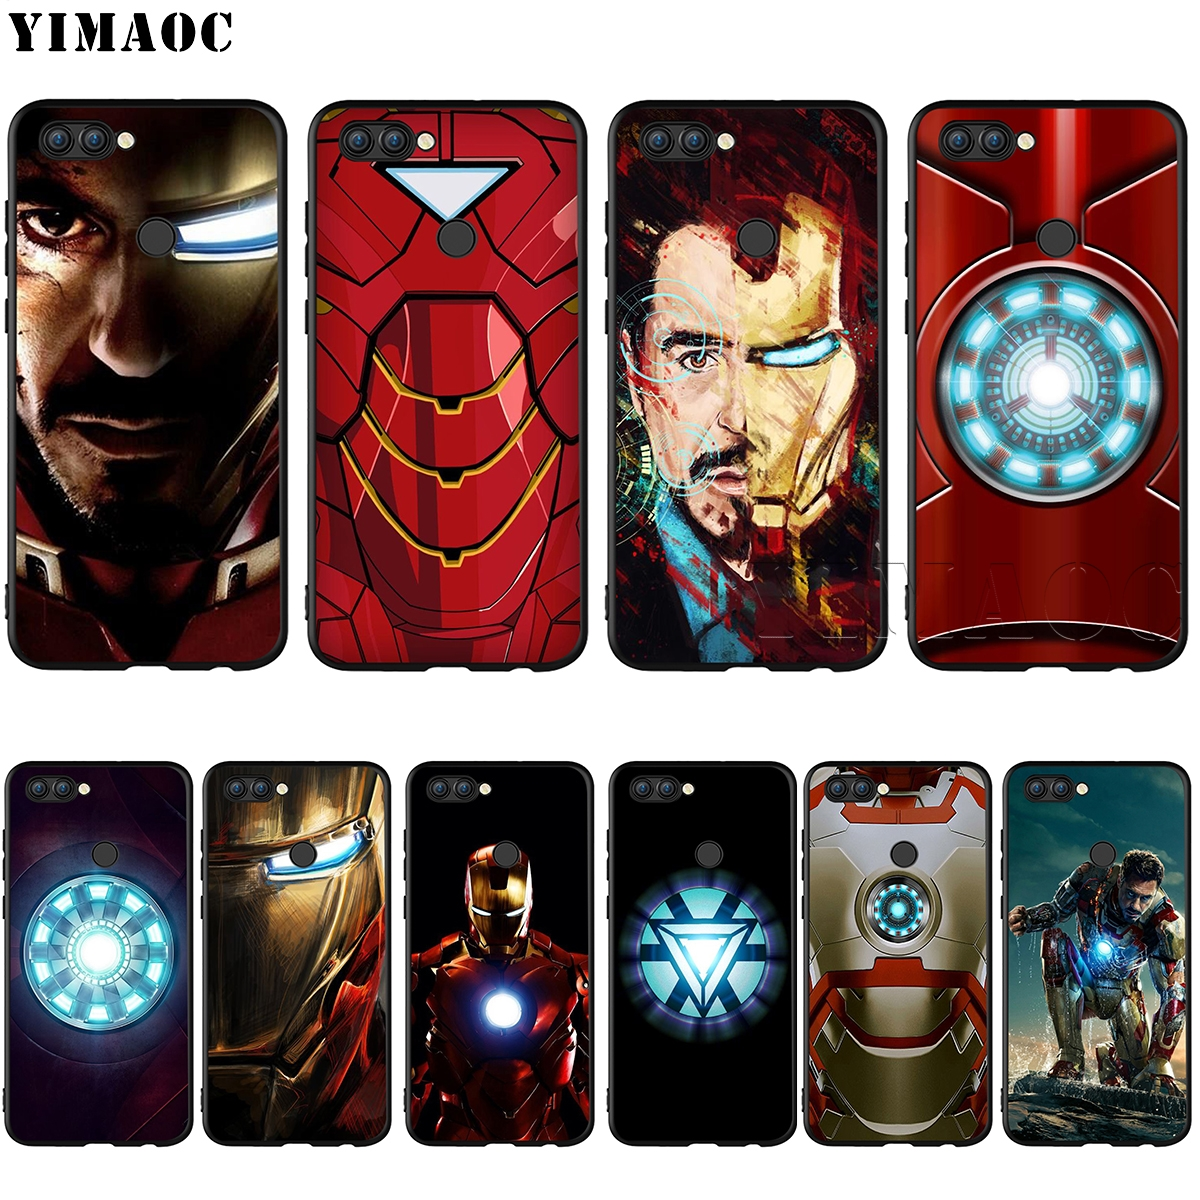 YIMAOC Marvel Iron Man Case for Huawei Mate 30 20 Honor Y7 7a 7c 8c 8x 9 10 Nova 3i 3 Lite Pro Y6 2018 P30 P smart image